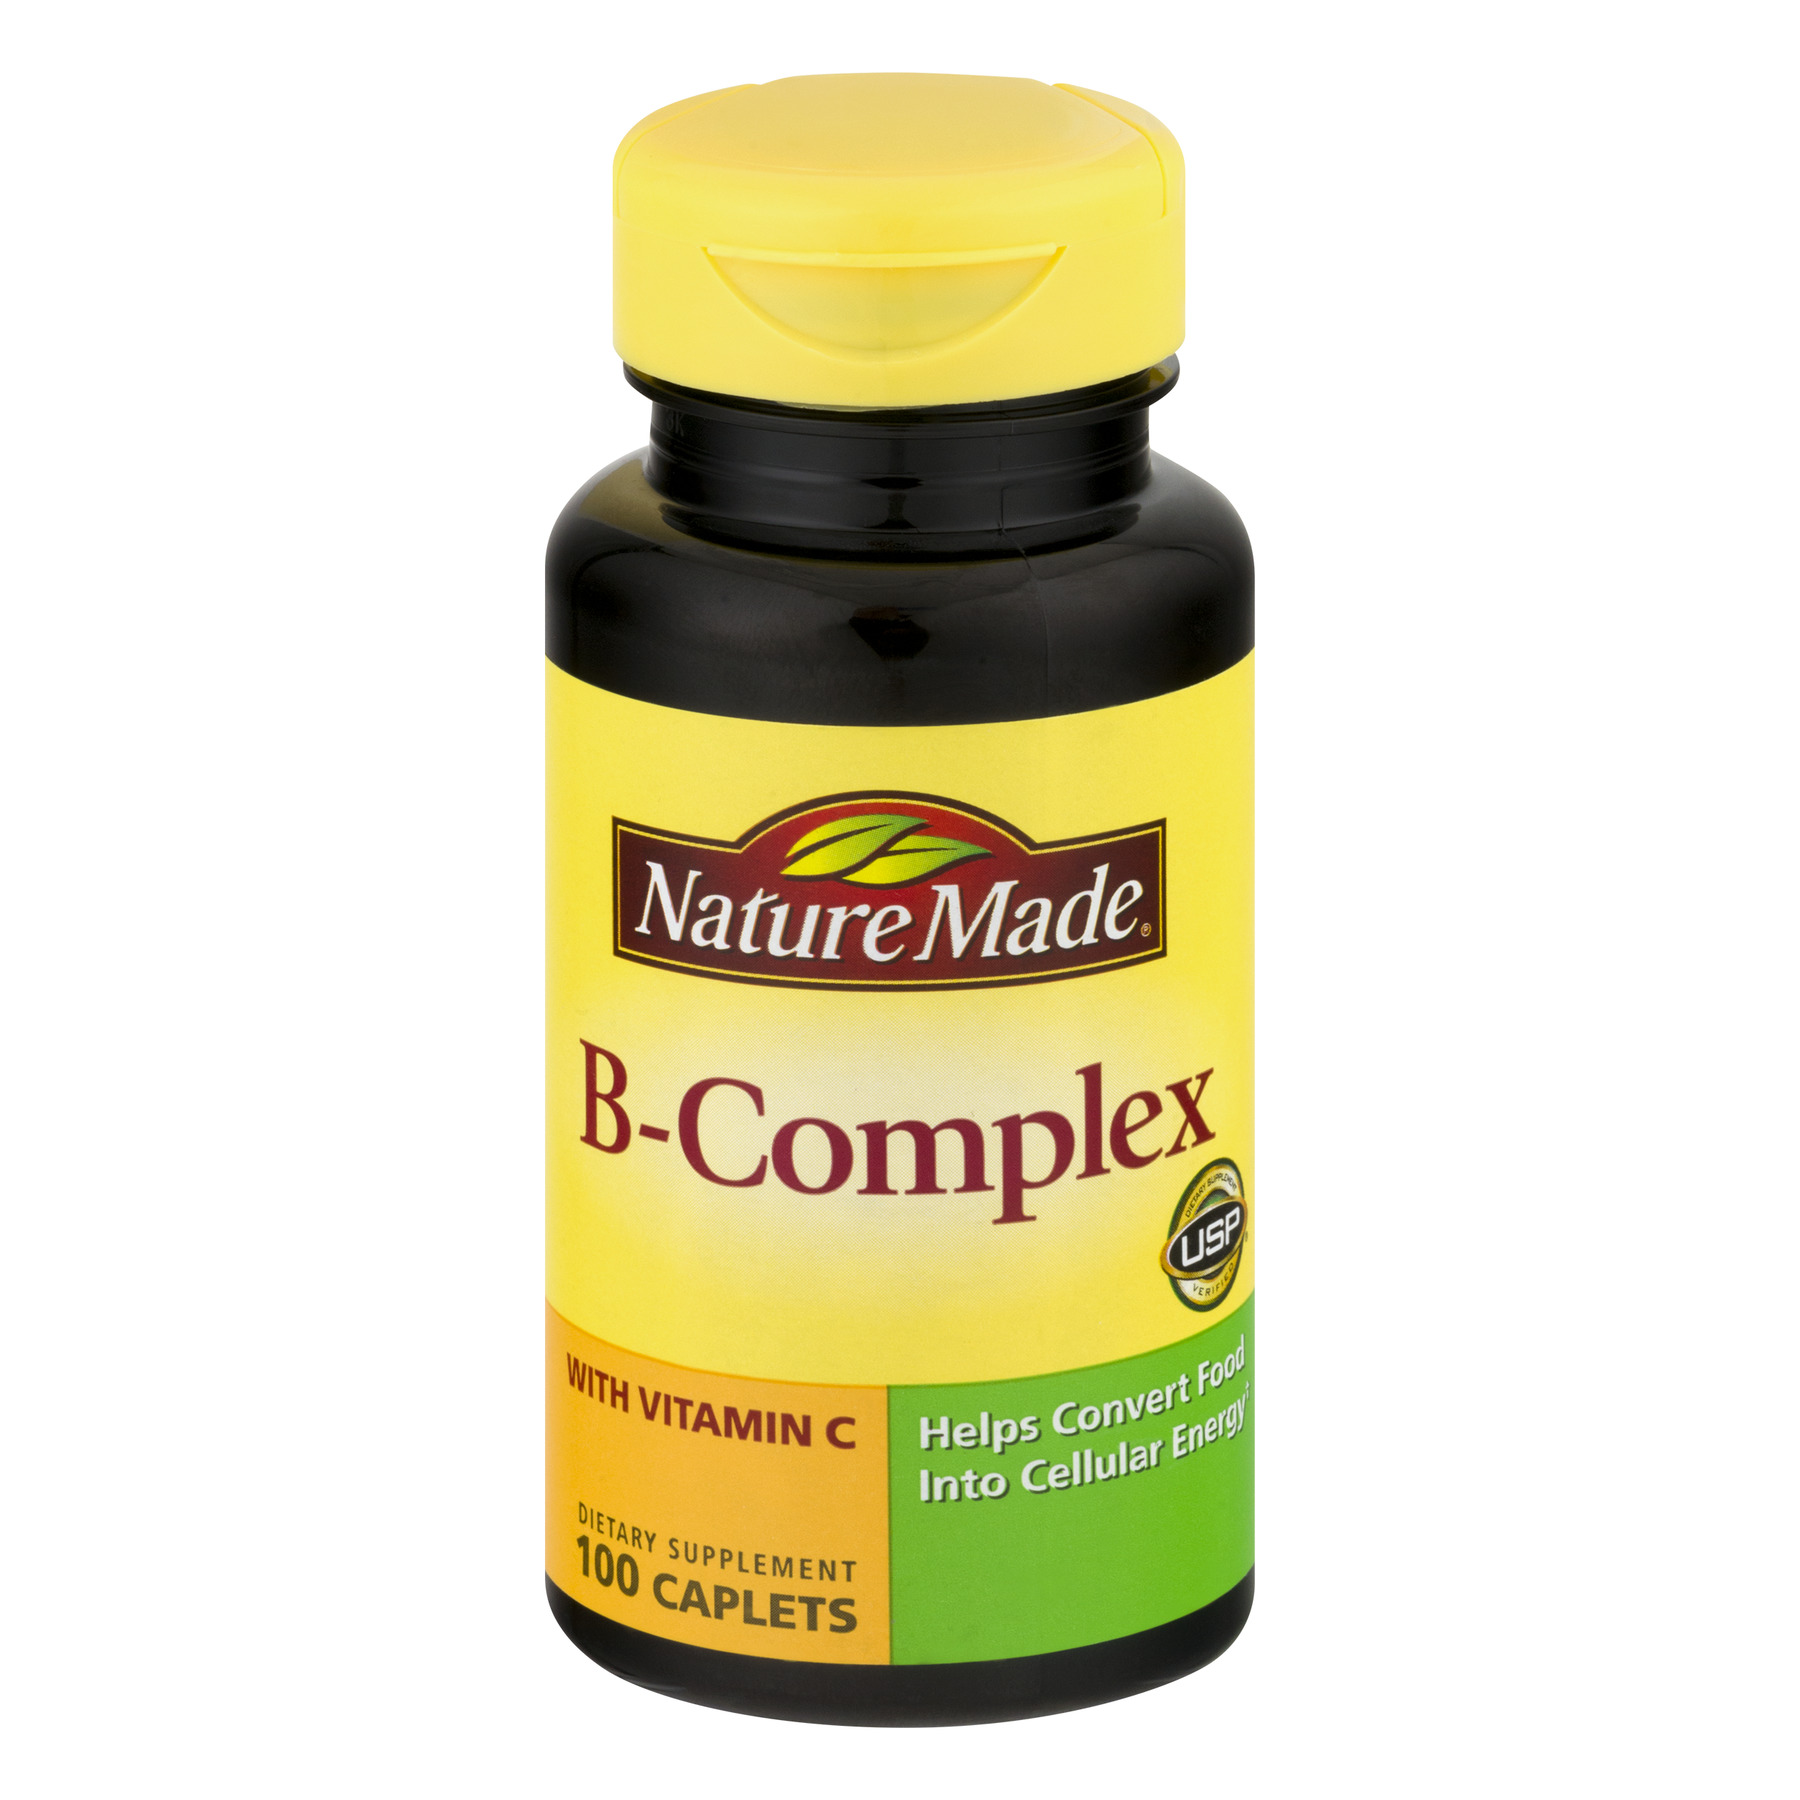 Nature Made B-Complex Caplets - 100 CT100.0 CT